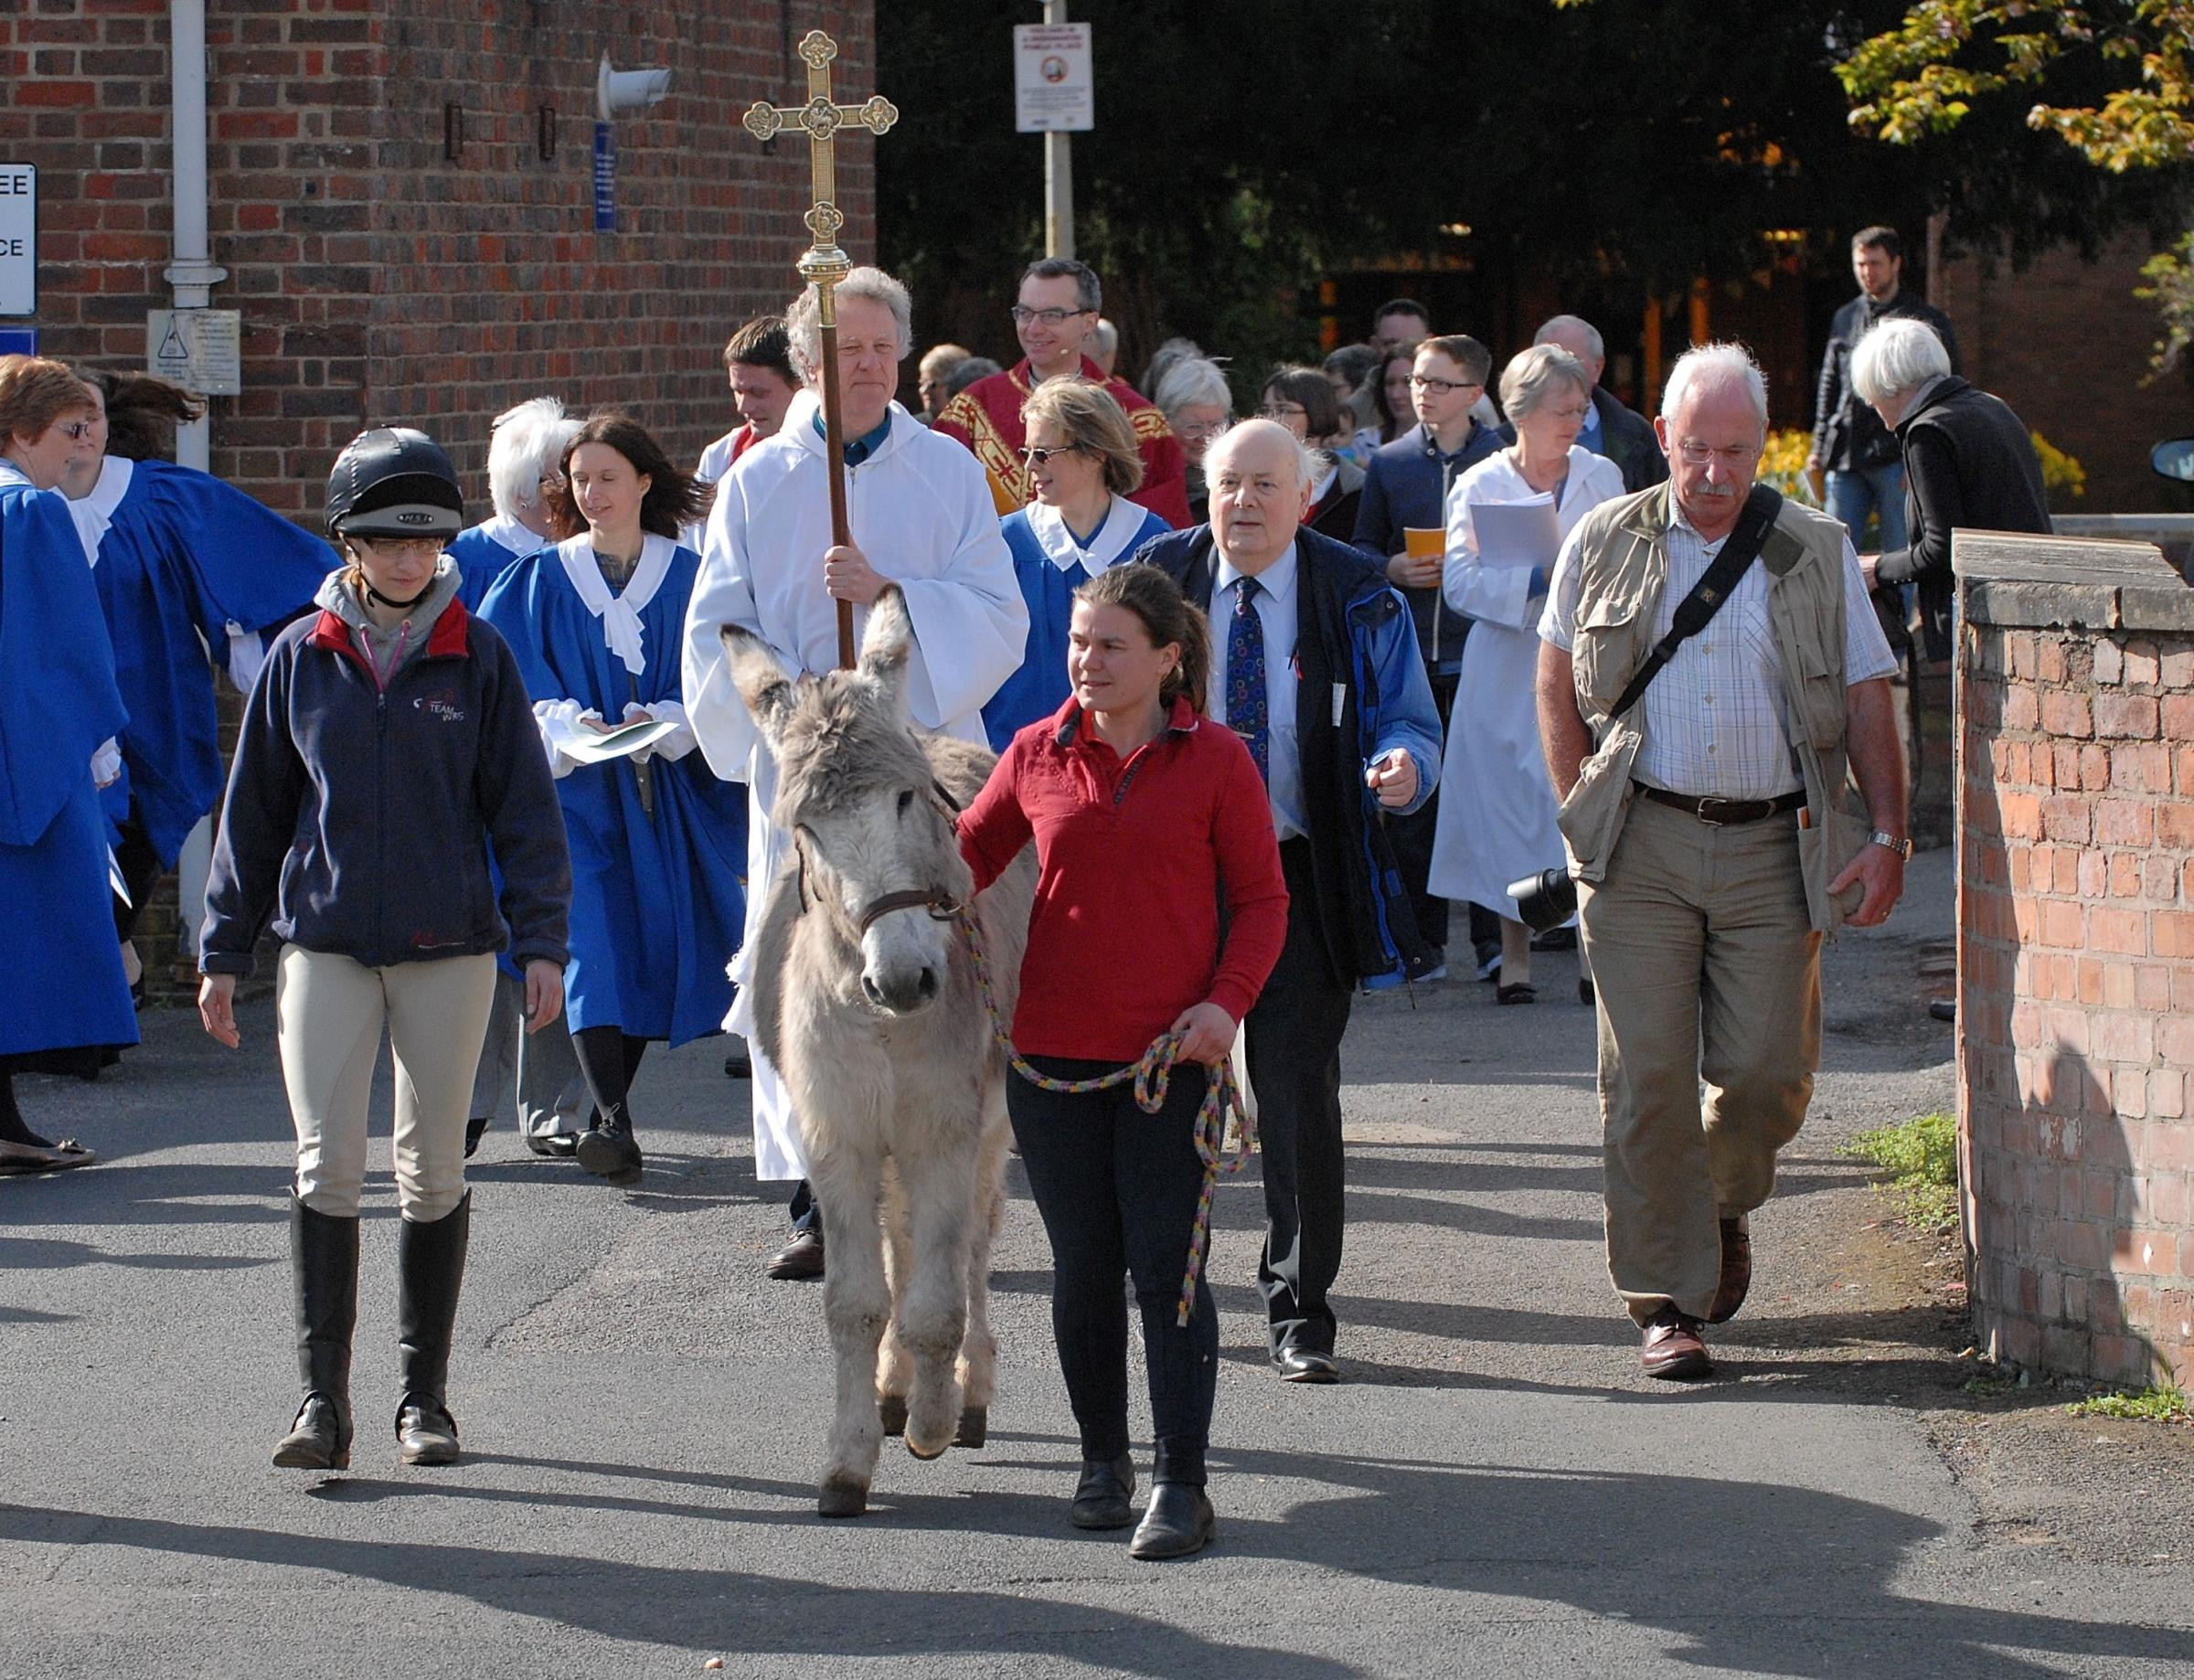 Donkey procession in Worcester is a symbol of Christ's humility